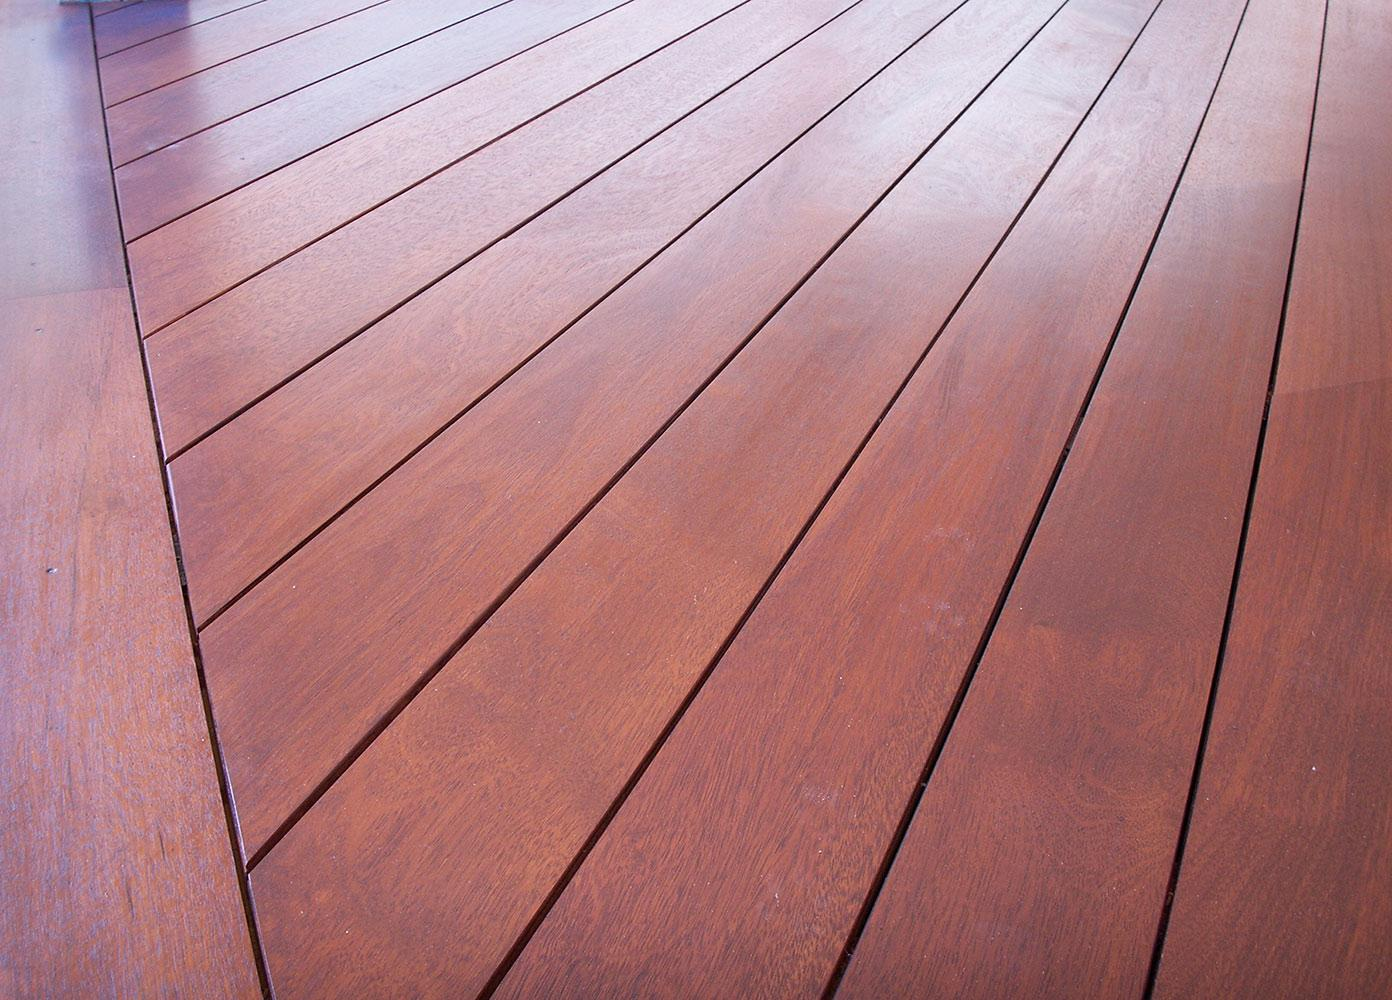 Why oil my deck?